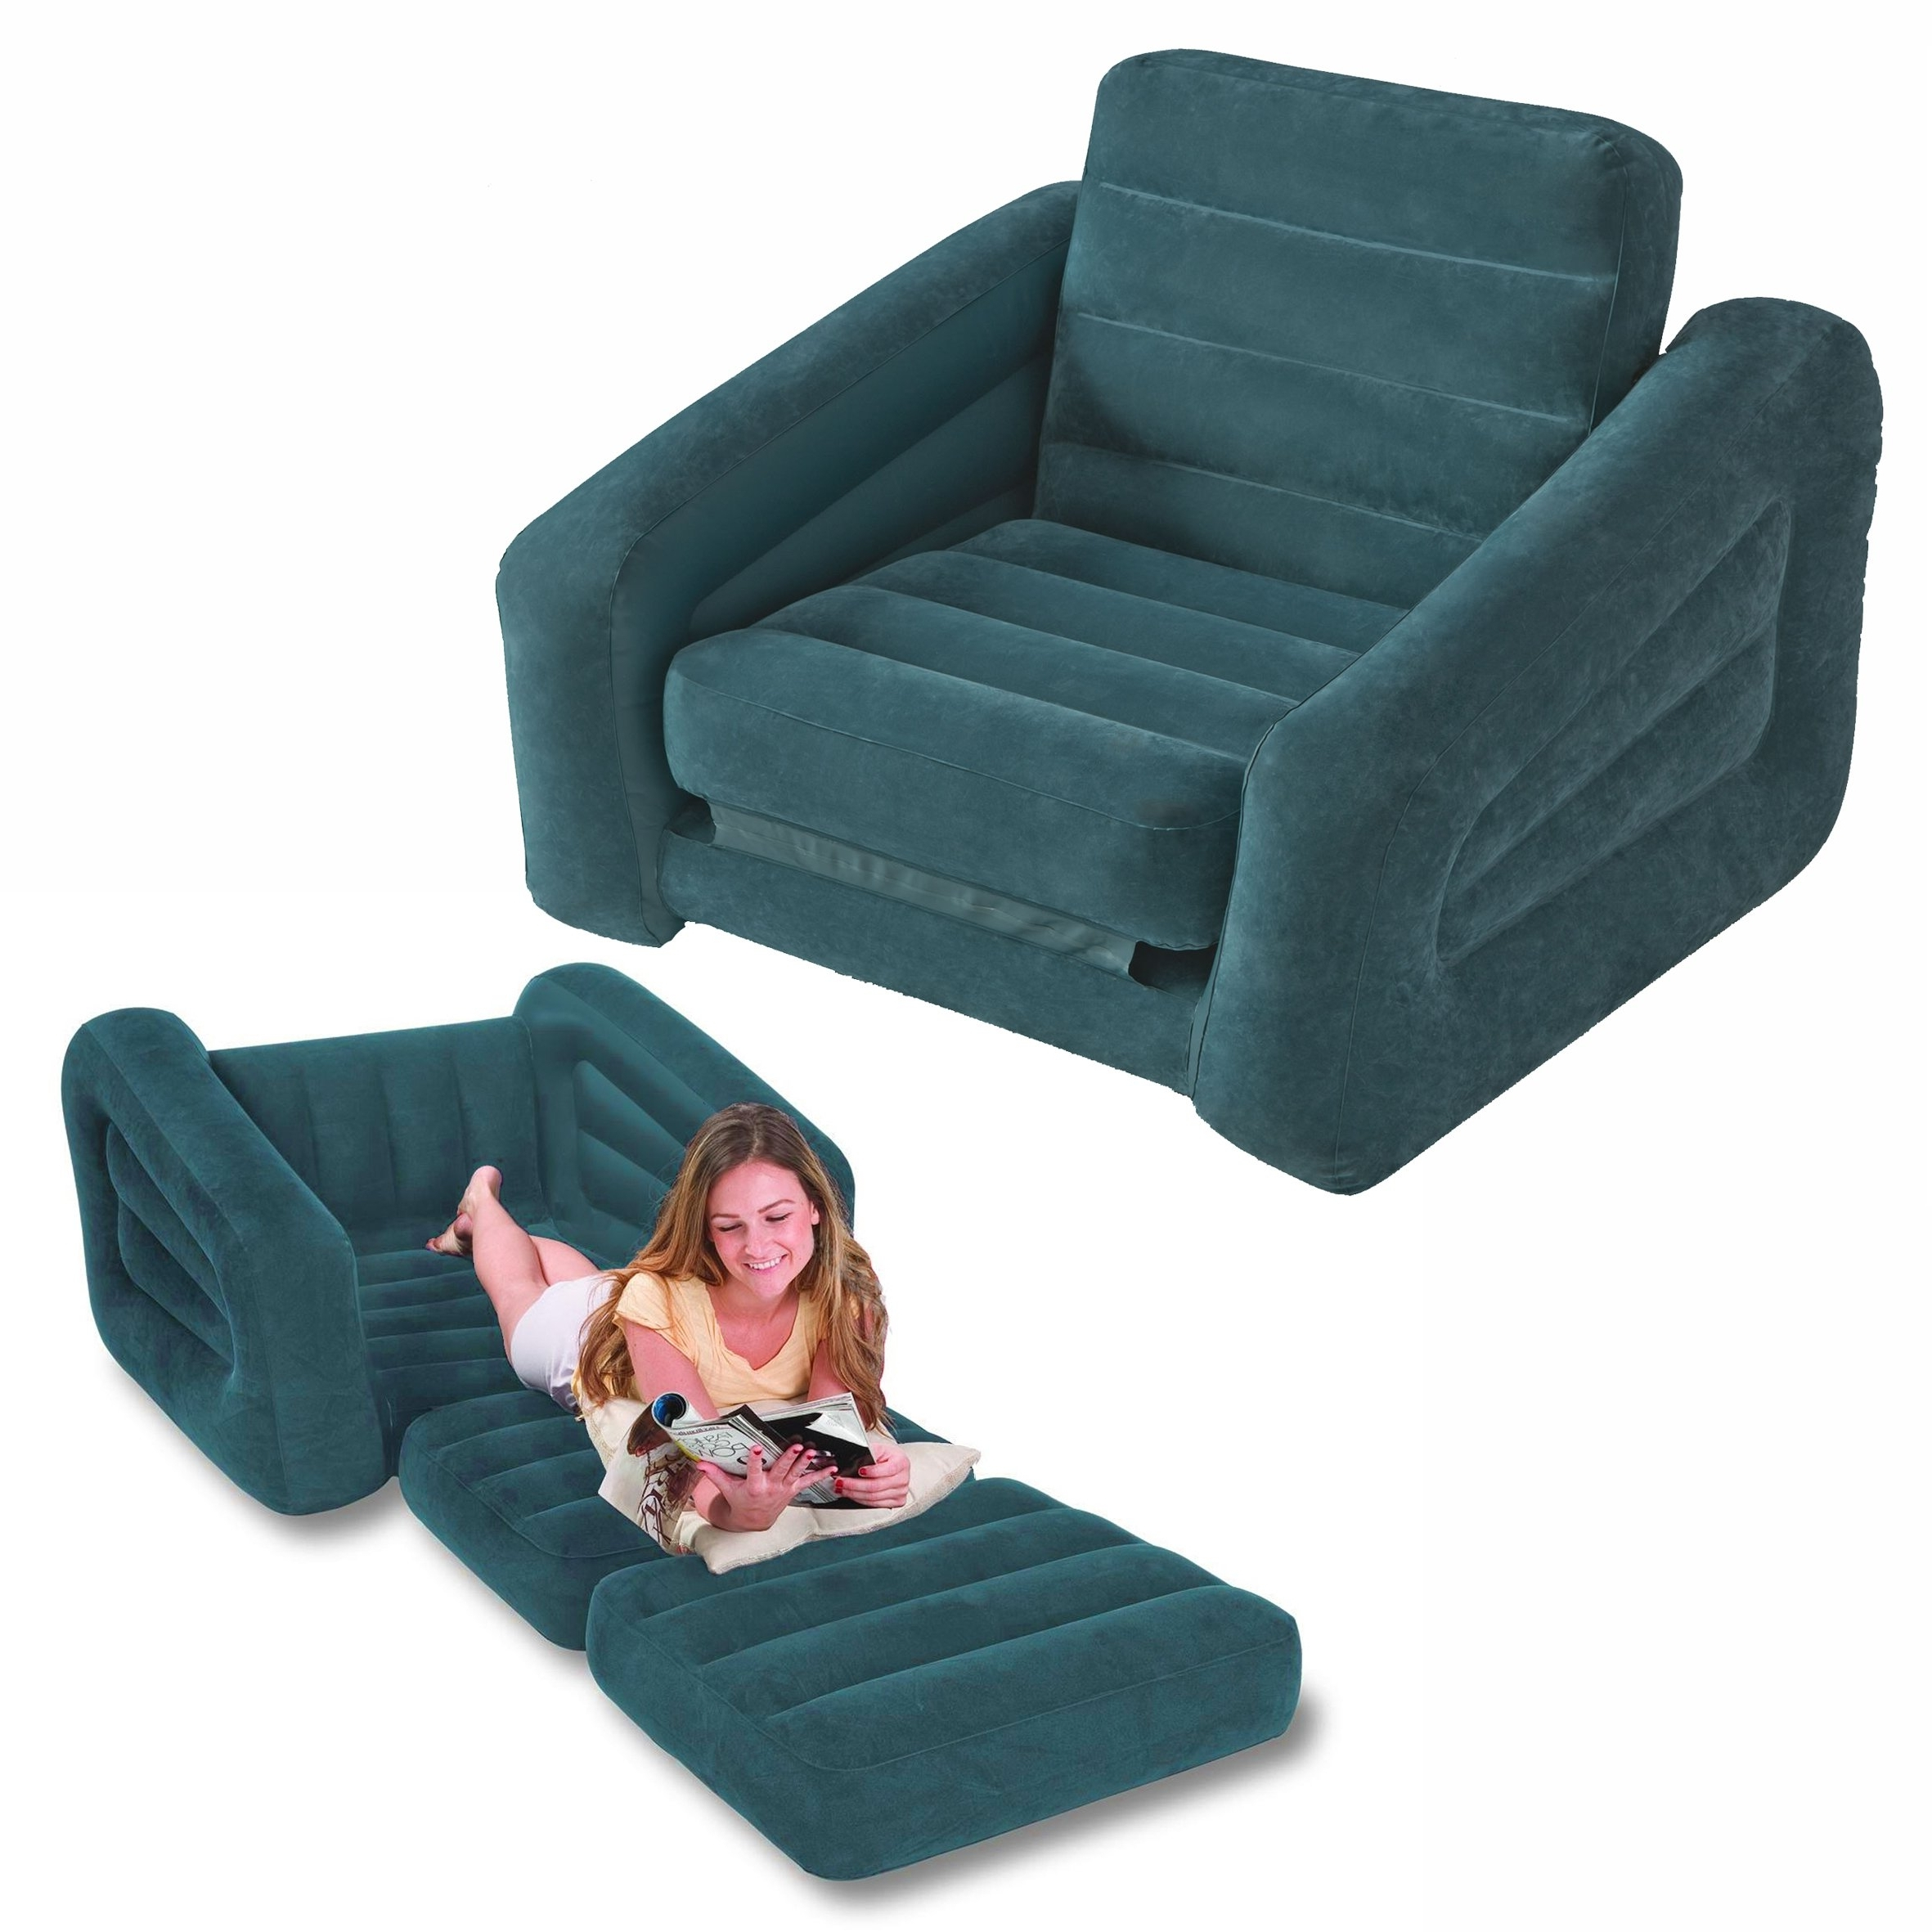 Intex One Person Inflatable Pull Out Chair Bed Sofa 68565 Regarding Most Recently Released